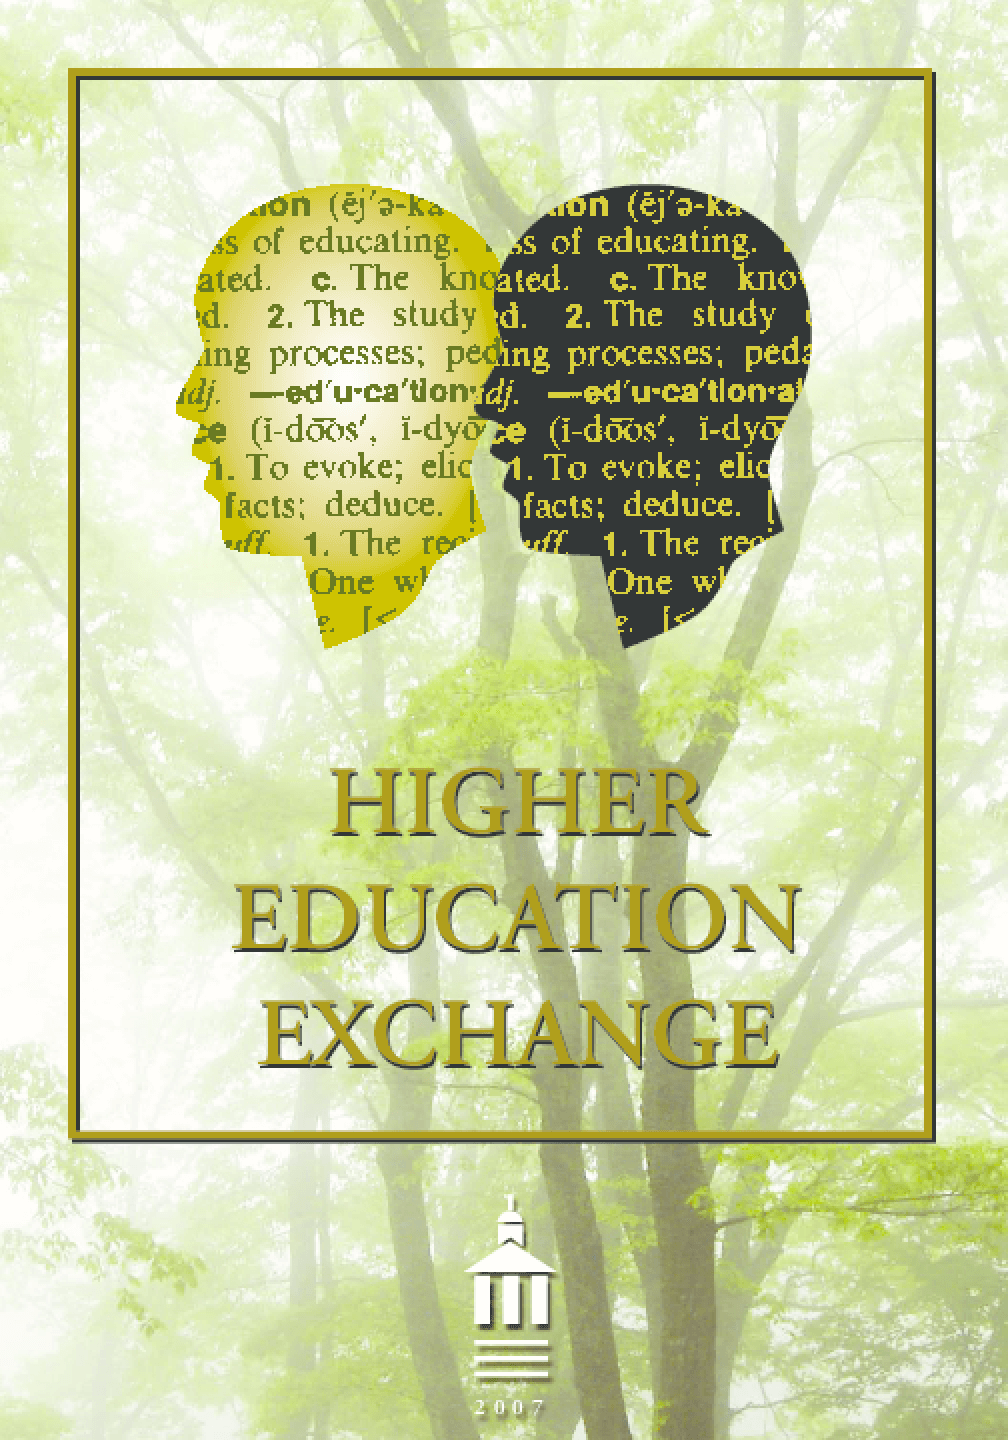 Higher Education Exchange: 2007